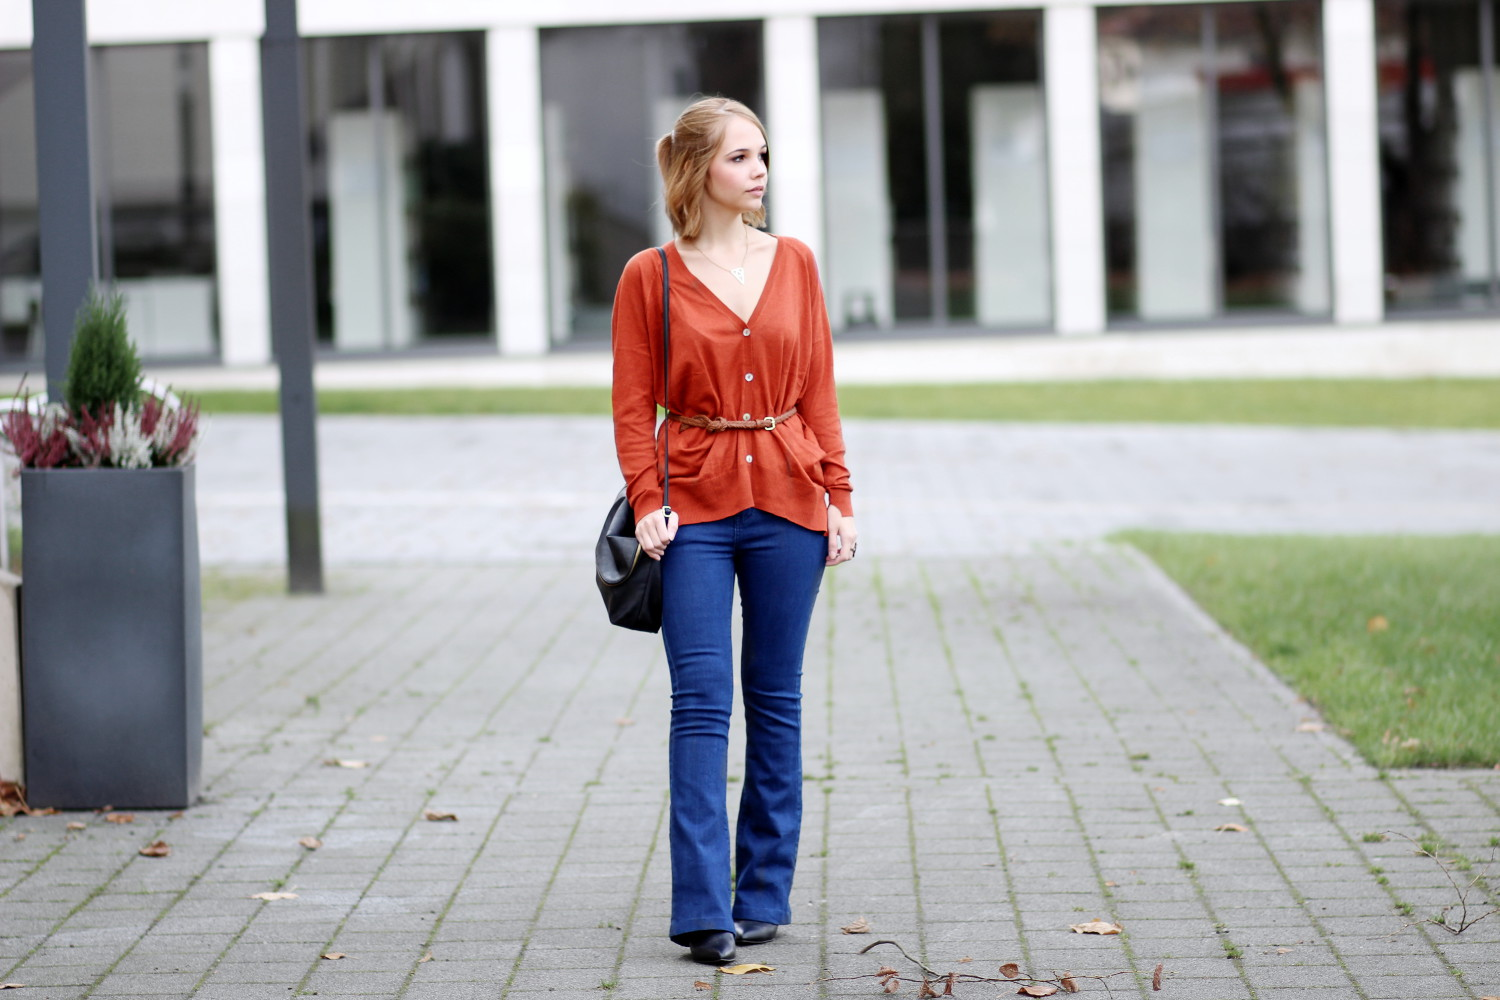 bezauberndenana-fashionblog-outfit-herbstoutfit-rostroter-cardigan-zara-flared-jeans